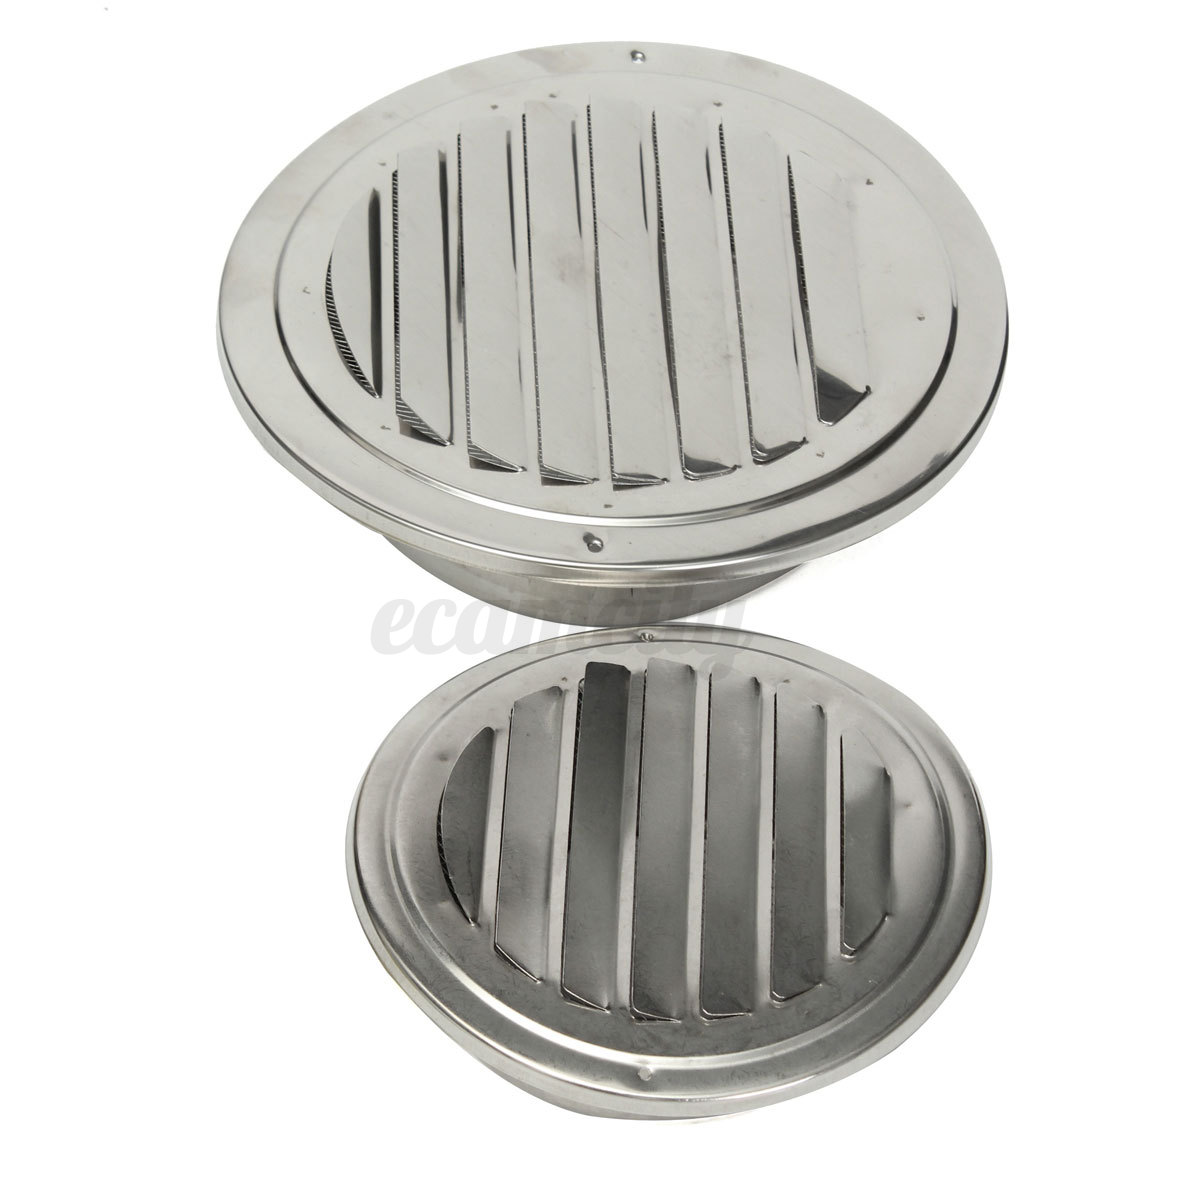 metal circle air vent grille round ducting ventilation cover ceiling wall 4 5 ebay. Black Bedroom Furniture Sets. Home Design Ideas